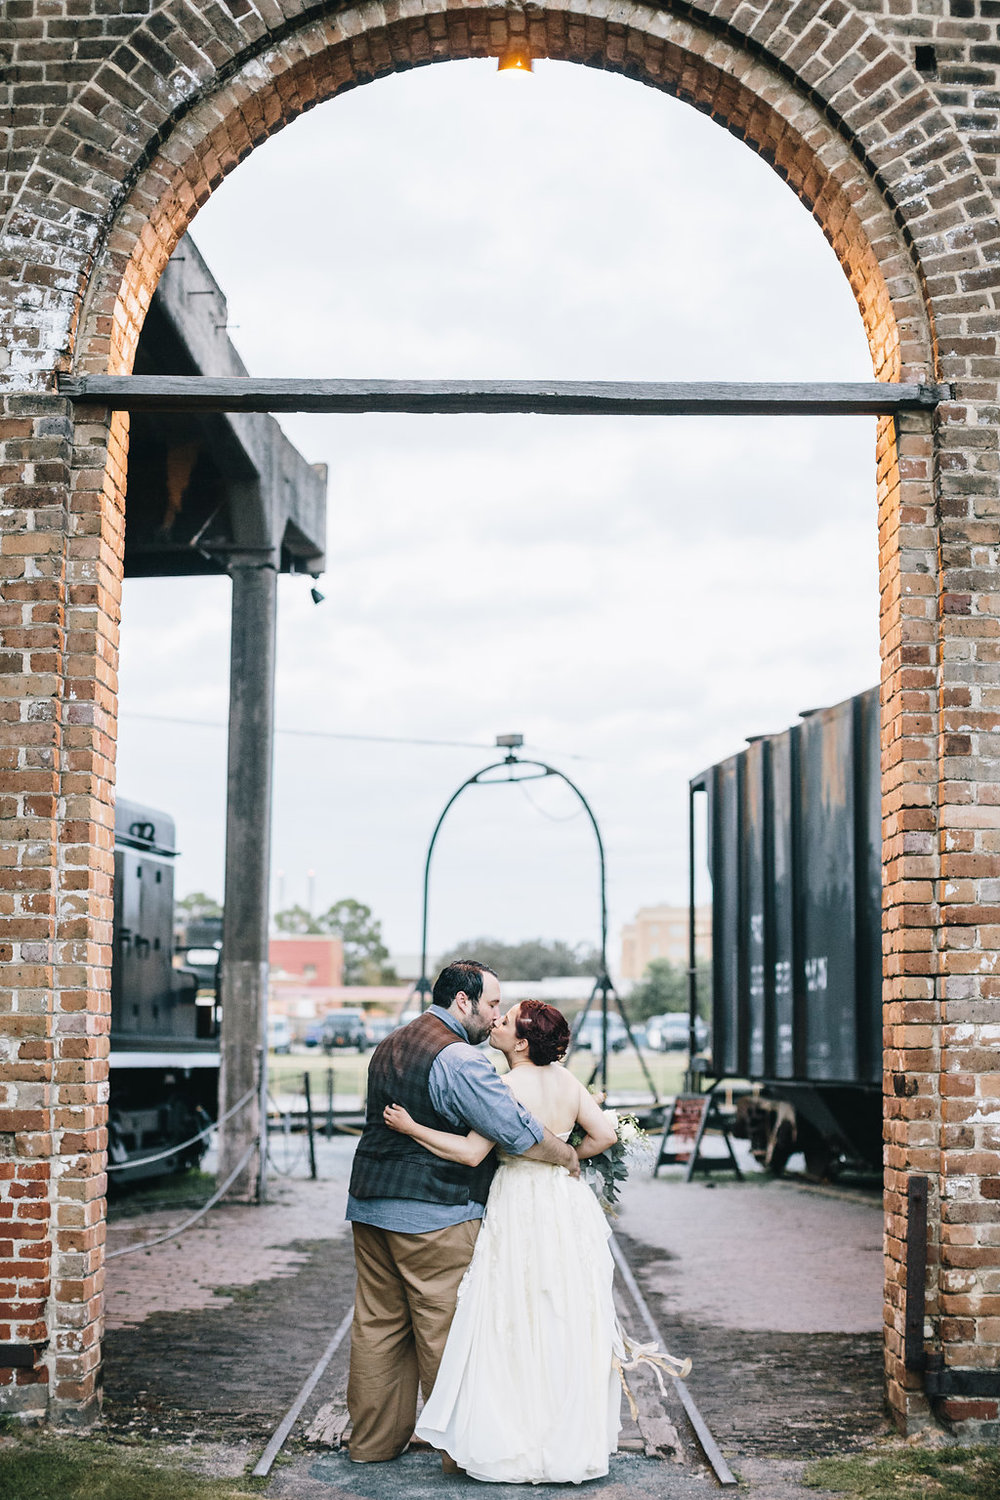 diy-wedding-at-roundhouse-railroad-museum